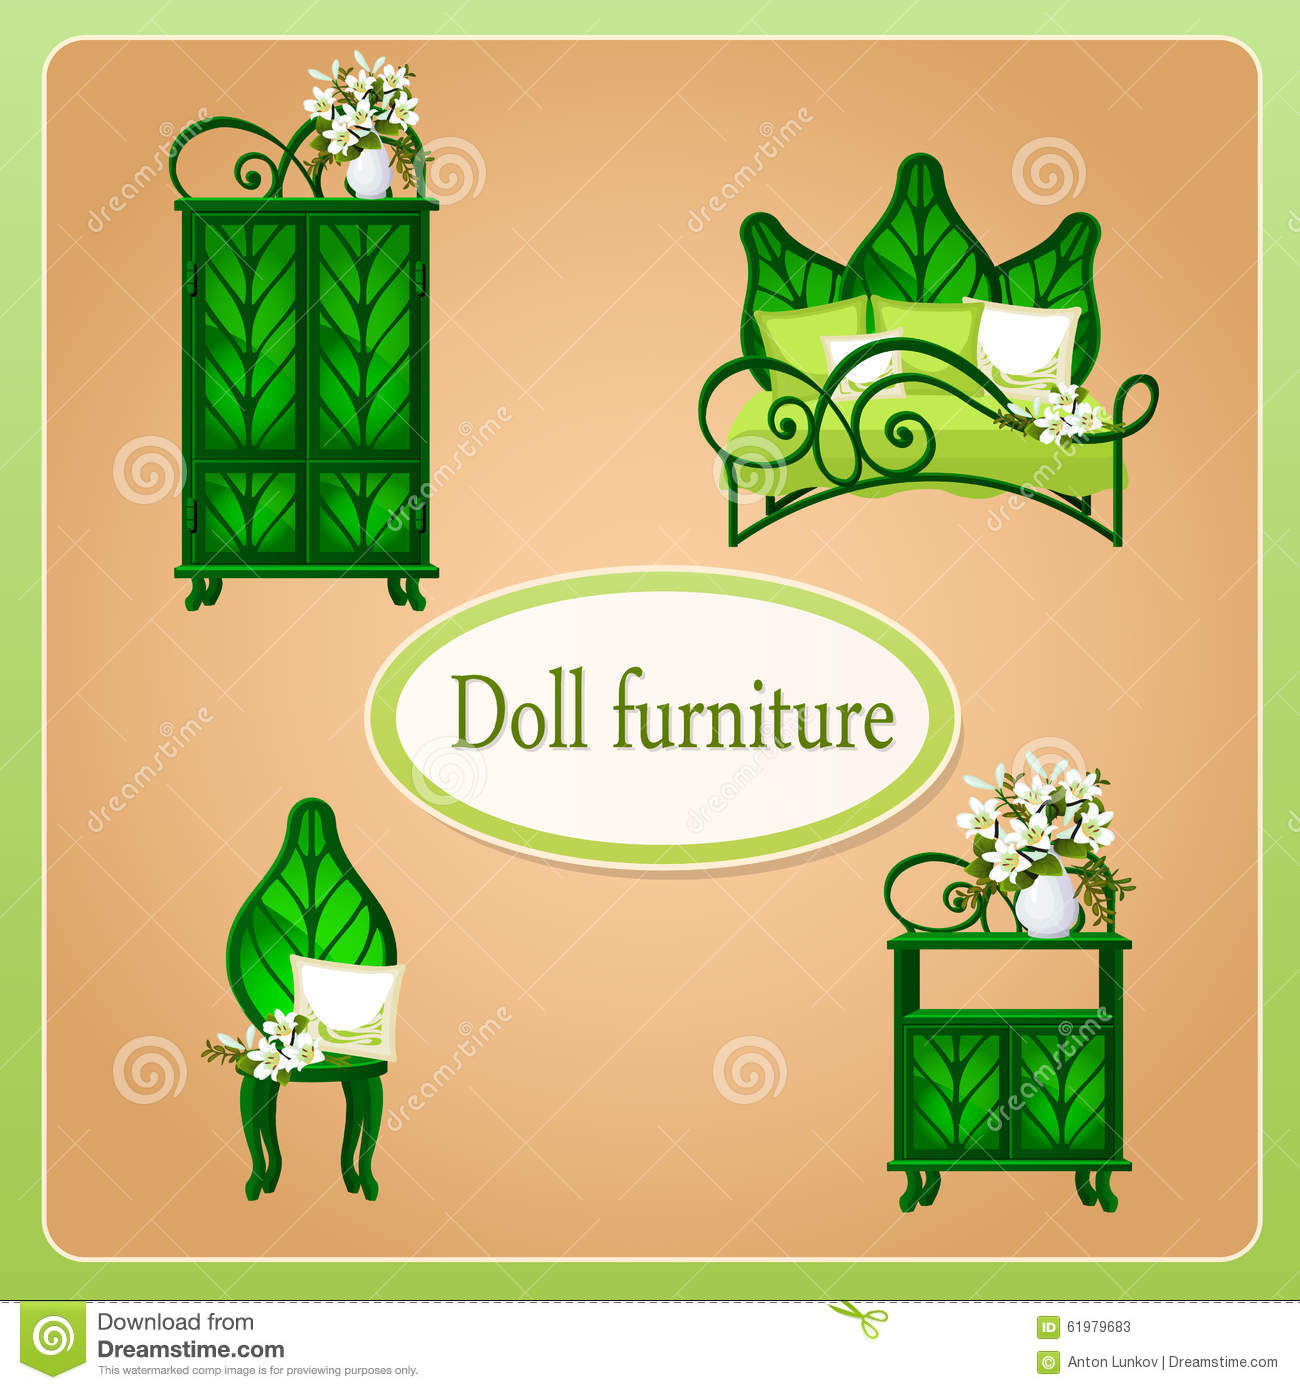 Green Eco Dollhouse Furniture Stock Vector Illustration Of Leaf